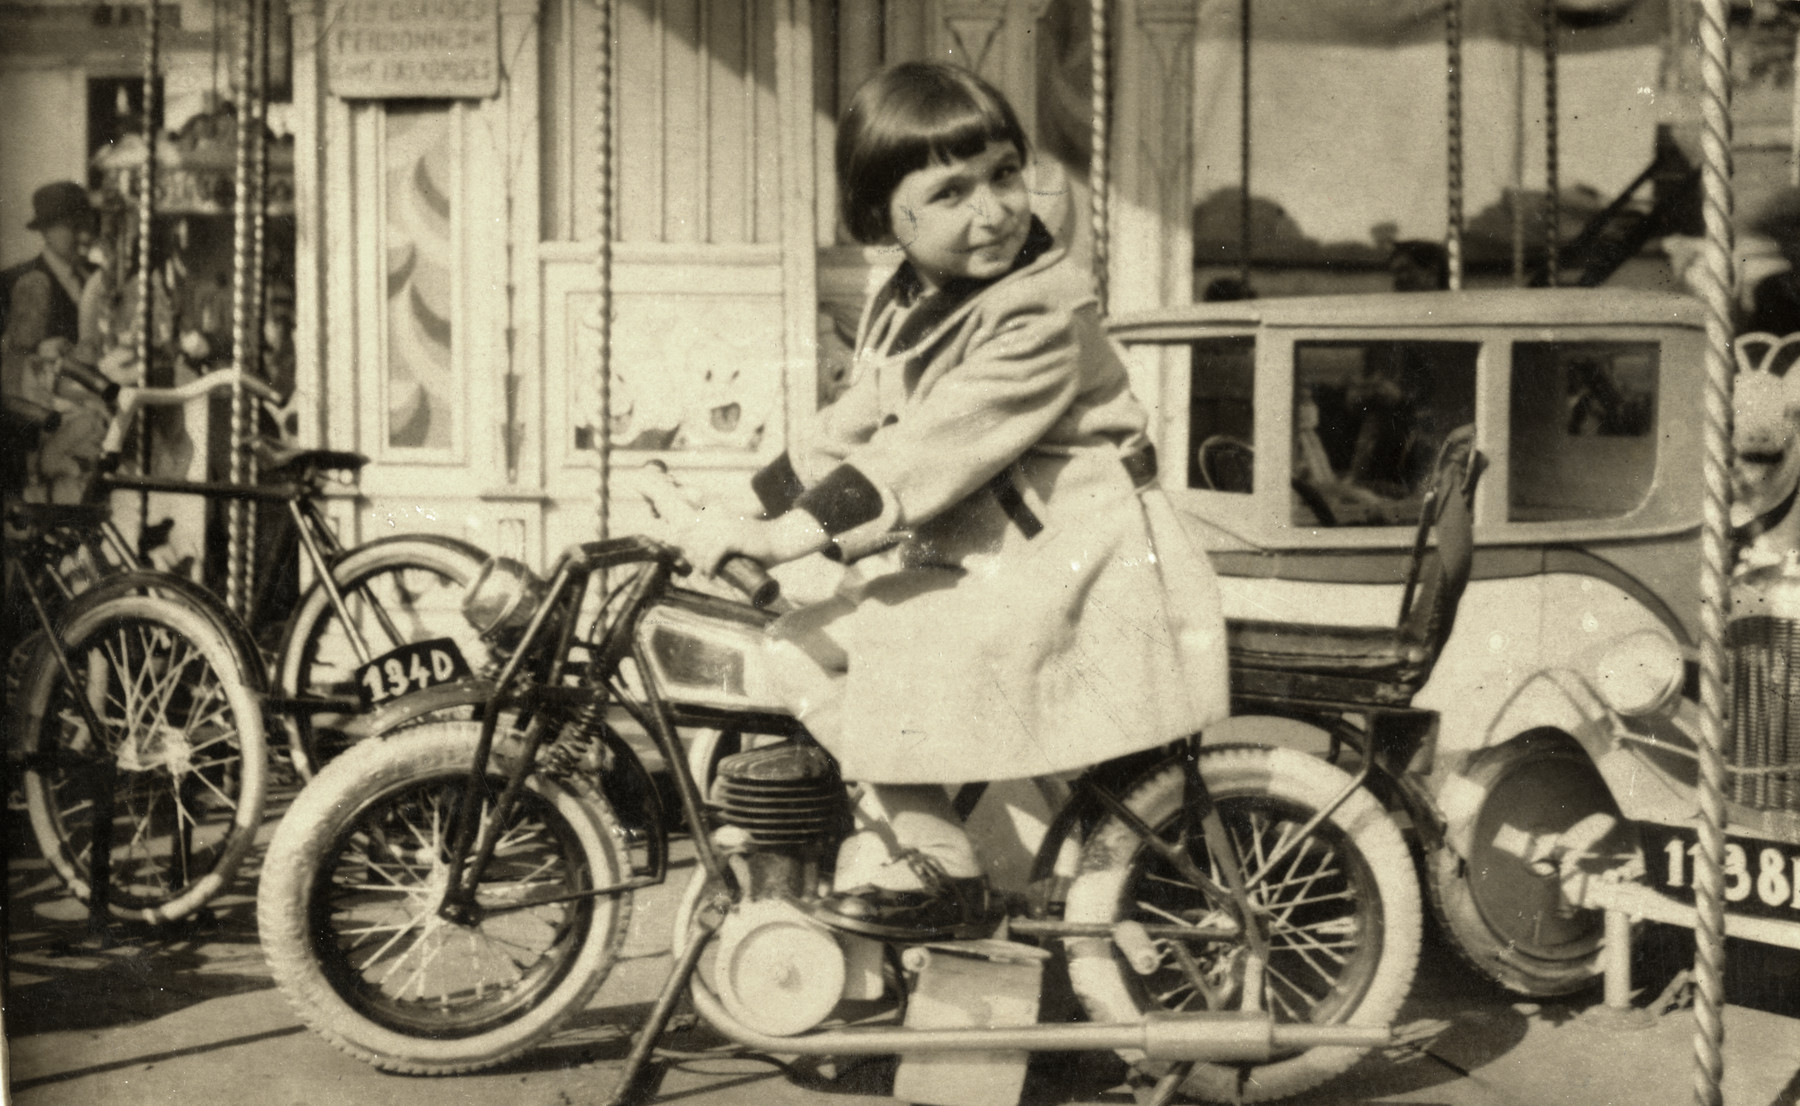 Lisa Rosensweig poses on a small bicycle.